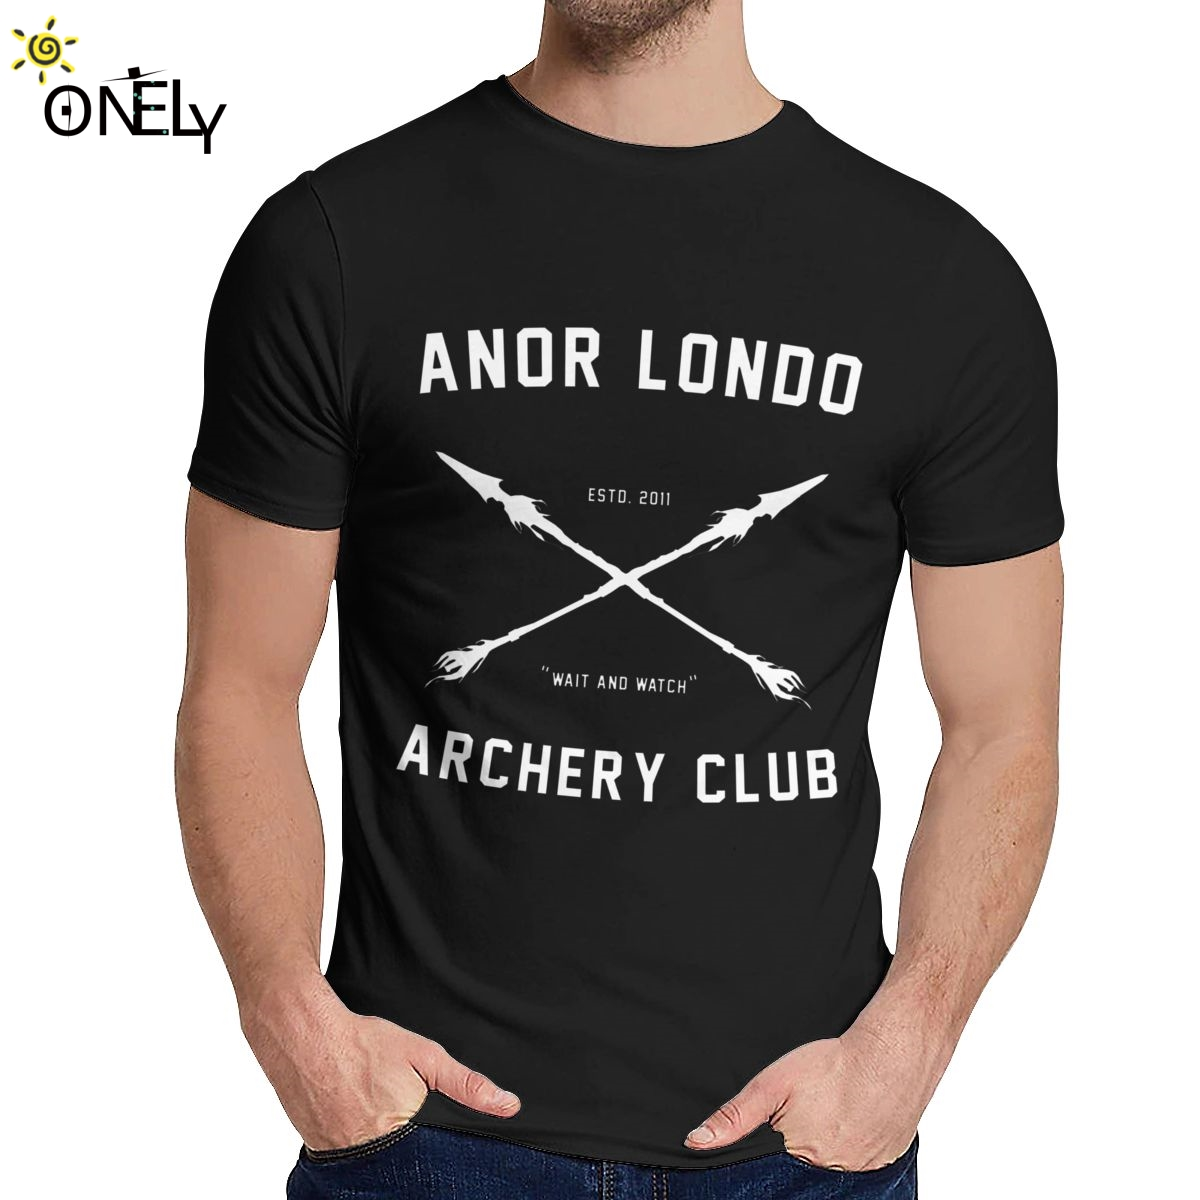 Leisure Man Dark Souls T Shirt ANOR <font><b>LONDO</b></font> ARCHERY CLUB Natural Cotton Hot Sale Man's O-neck Hip Hop Short Sleeve image